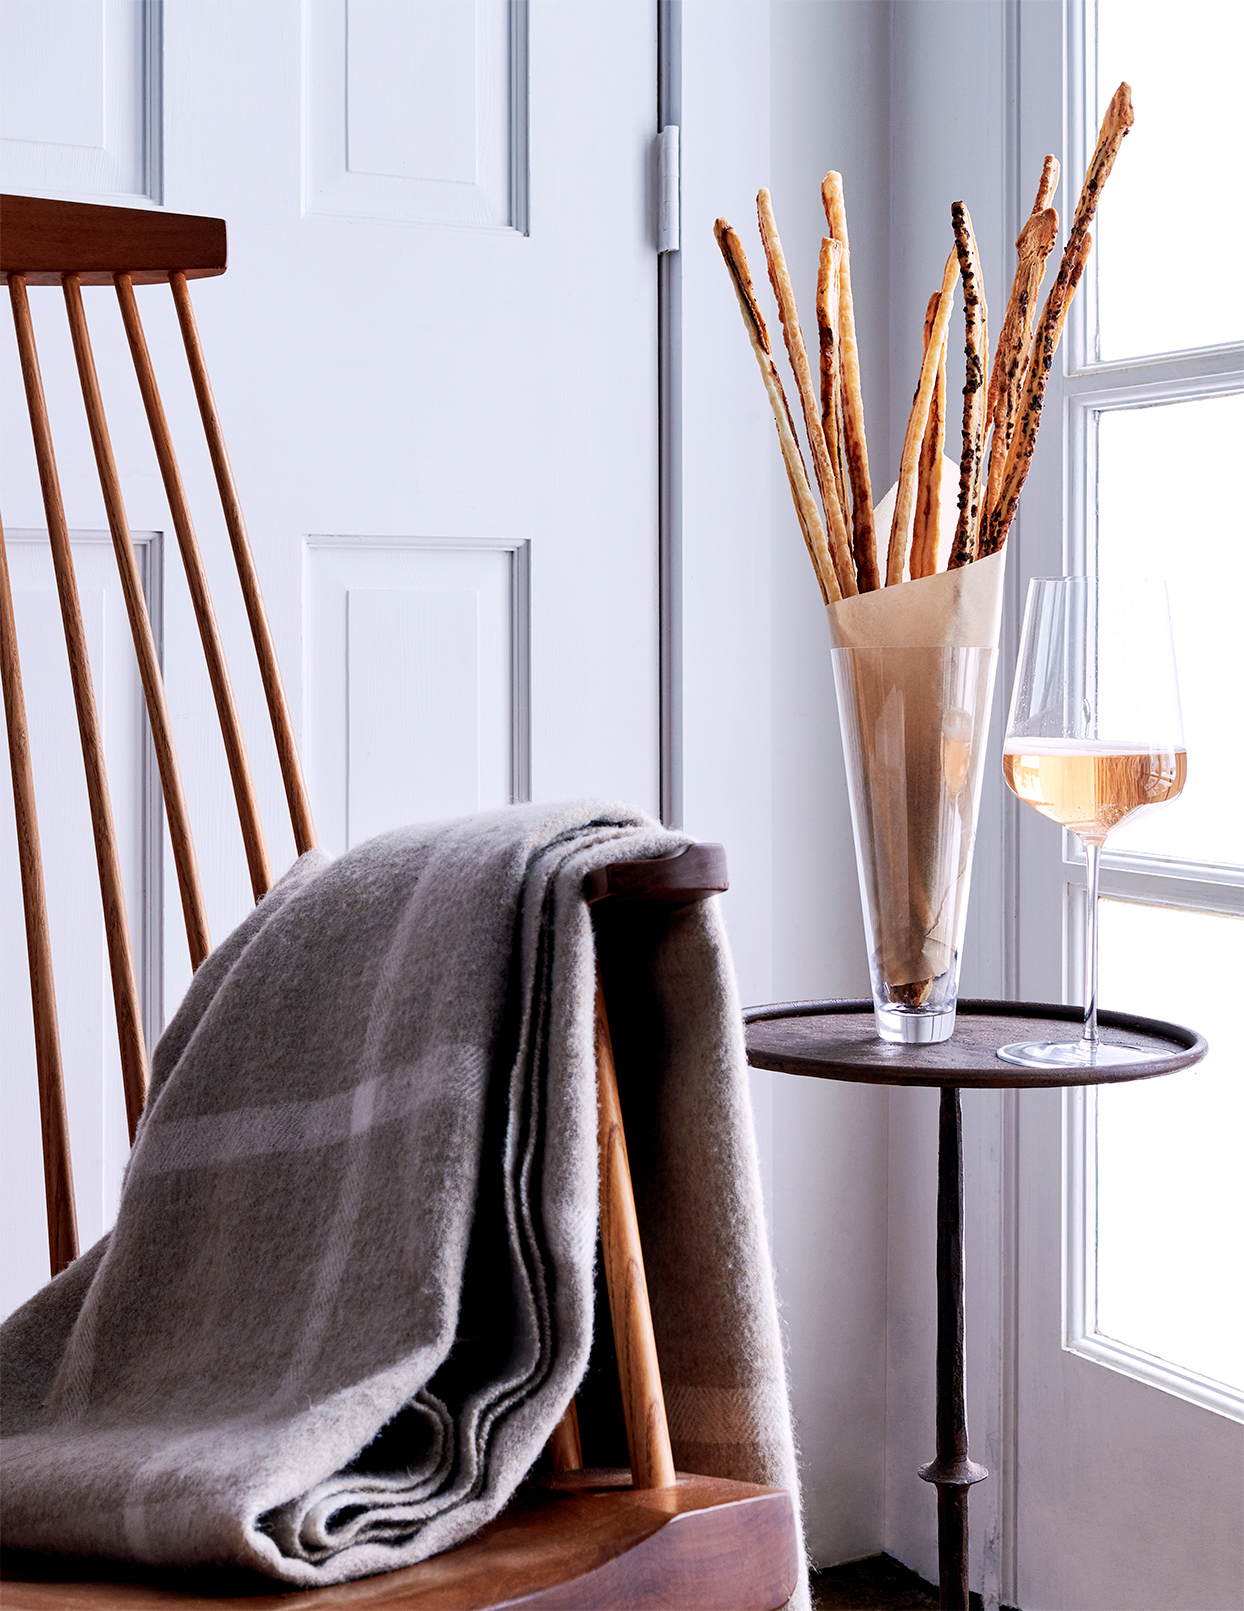 gruyere anchovy and olive straws within glass vase